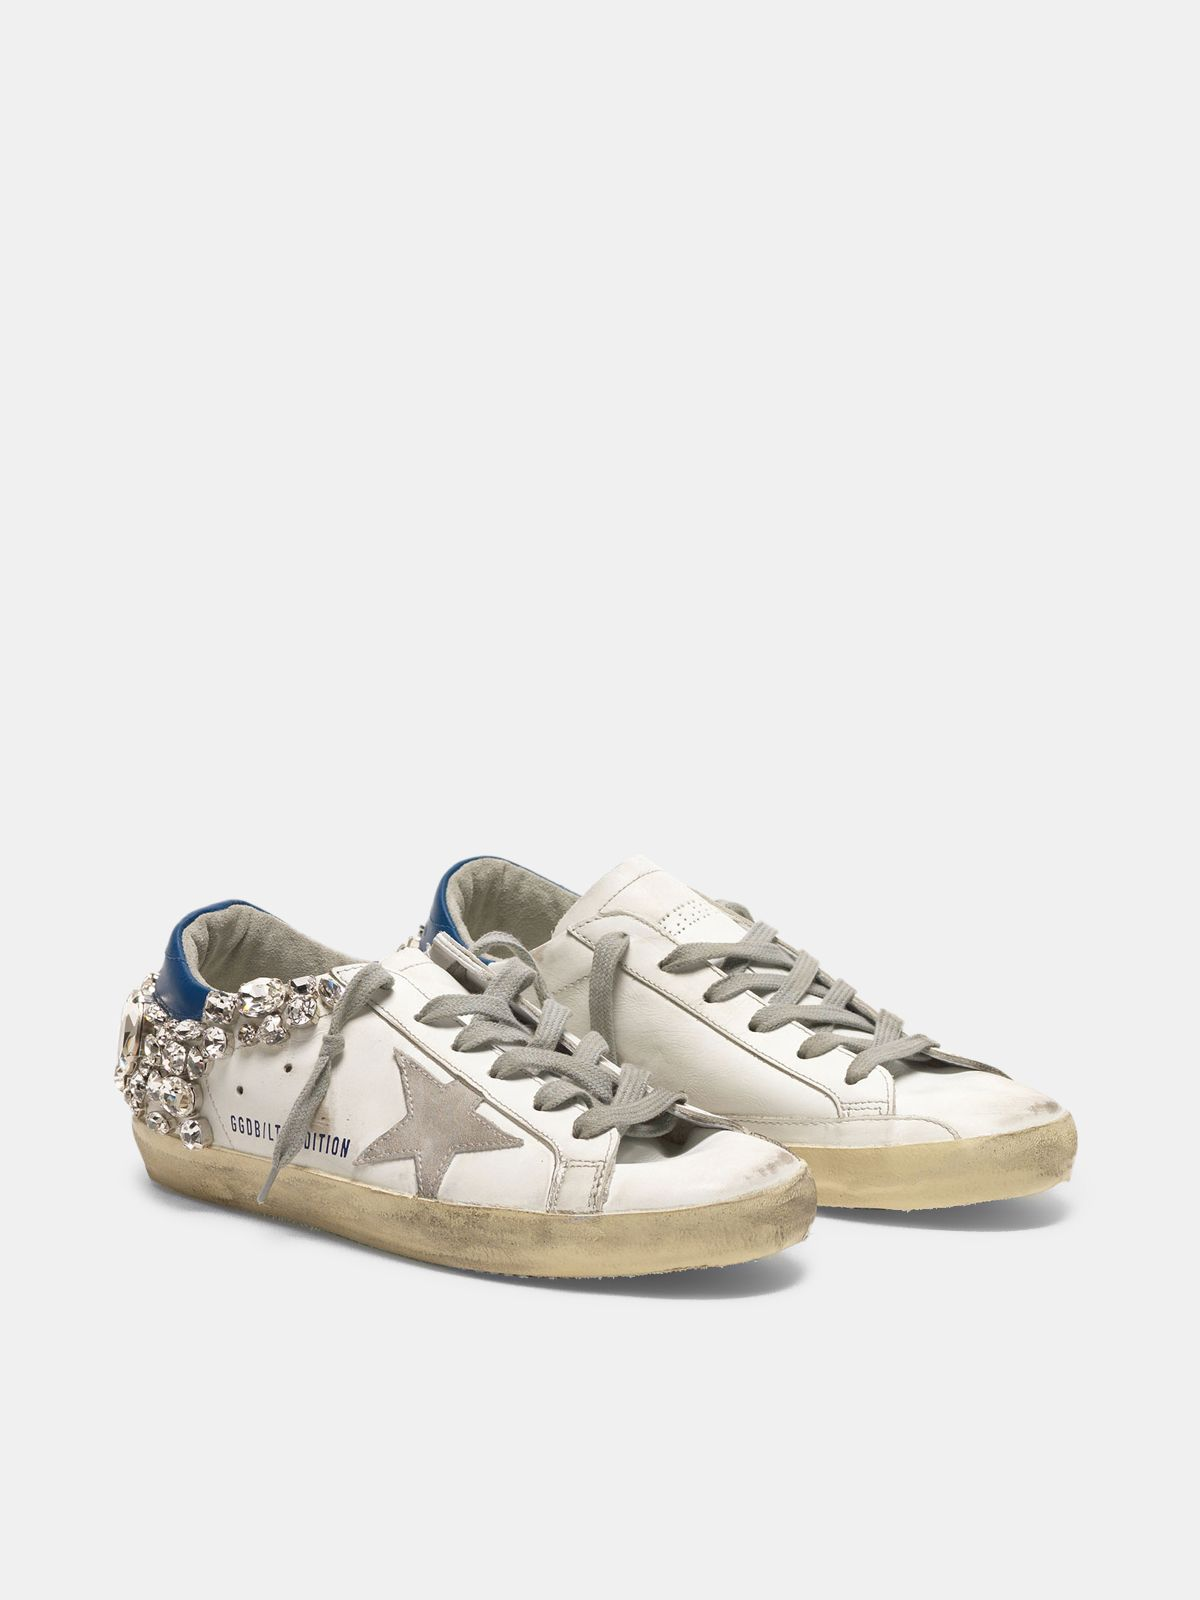 Golden Goose - Super-Star sneakers with stones appliqués in